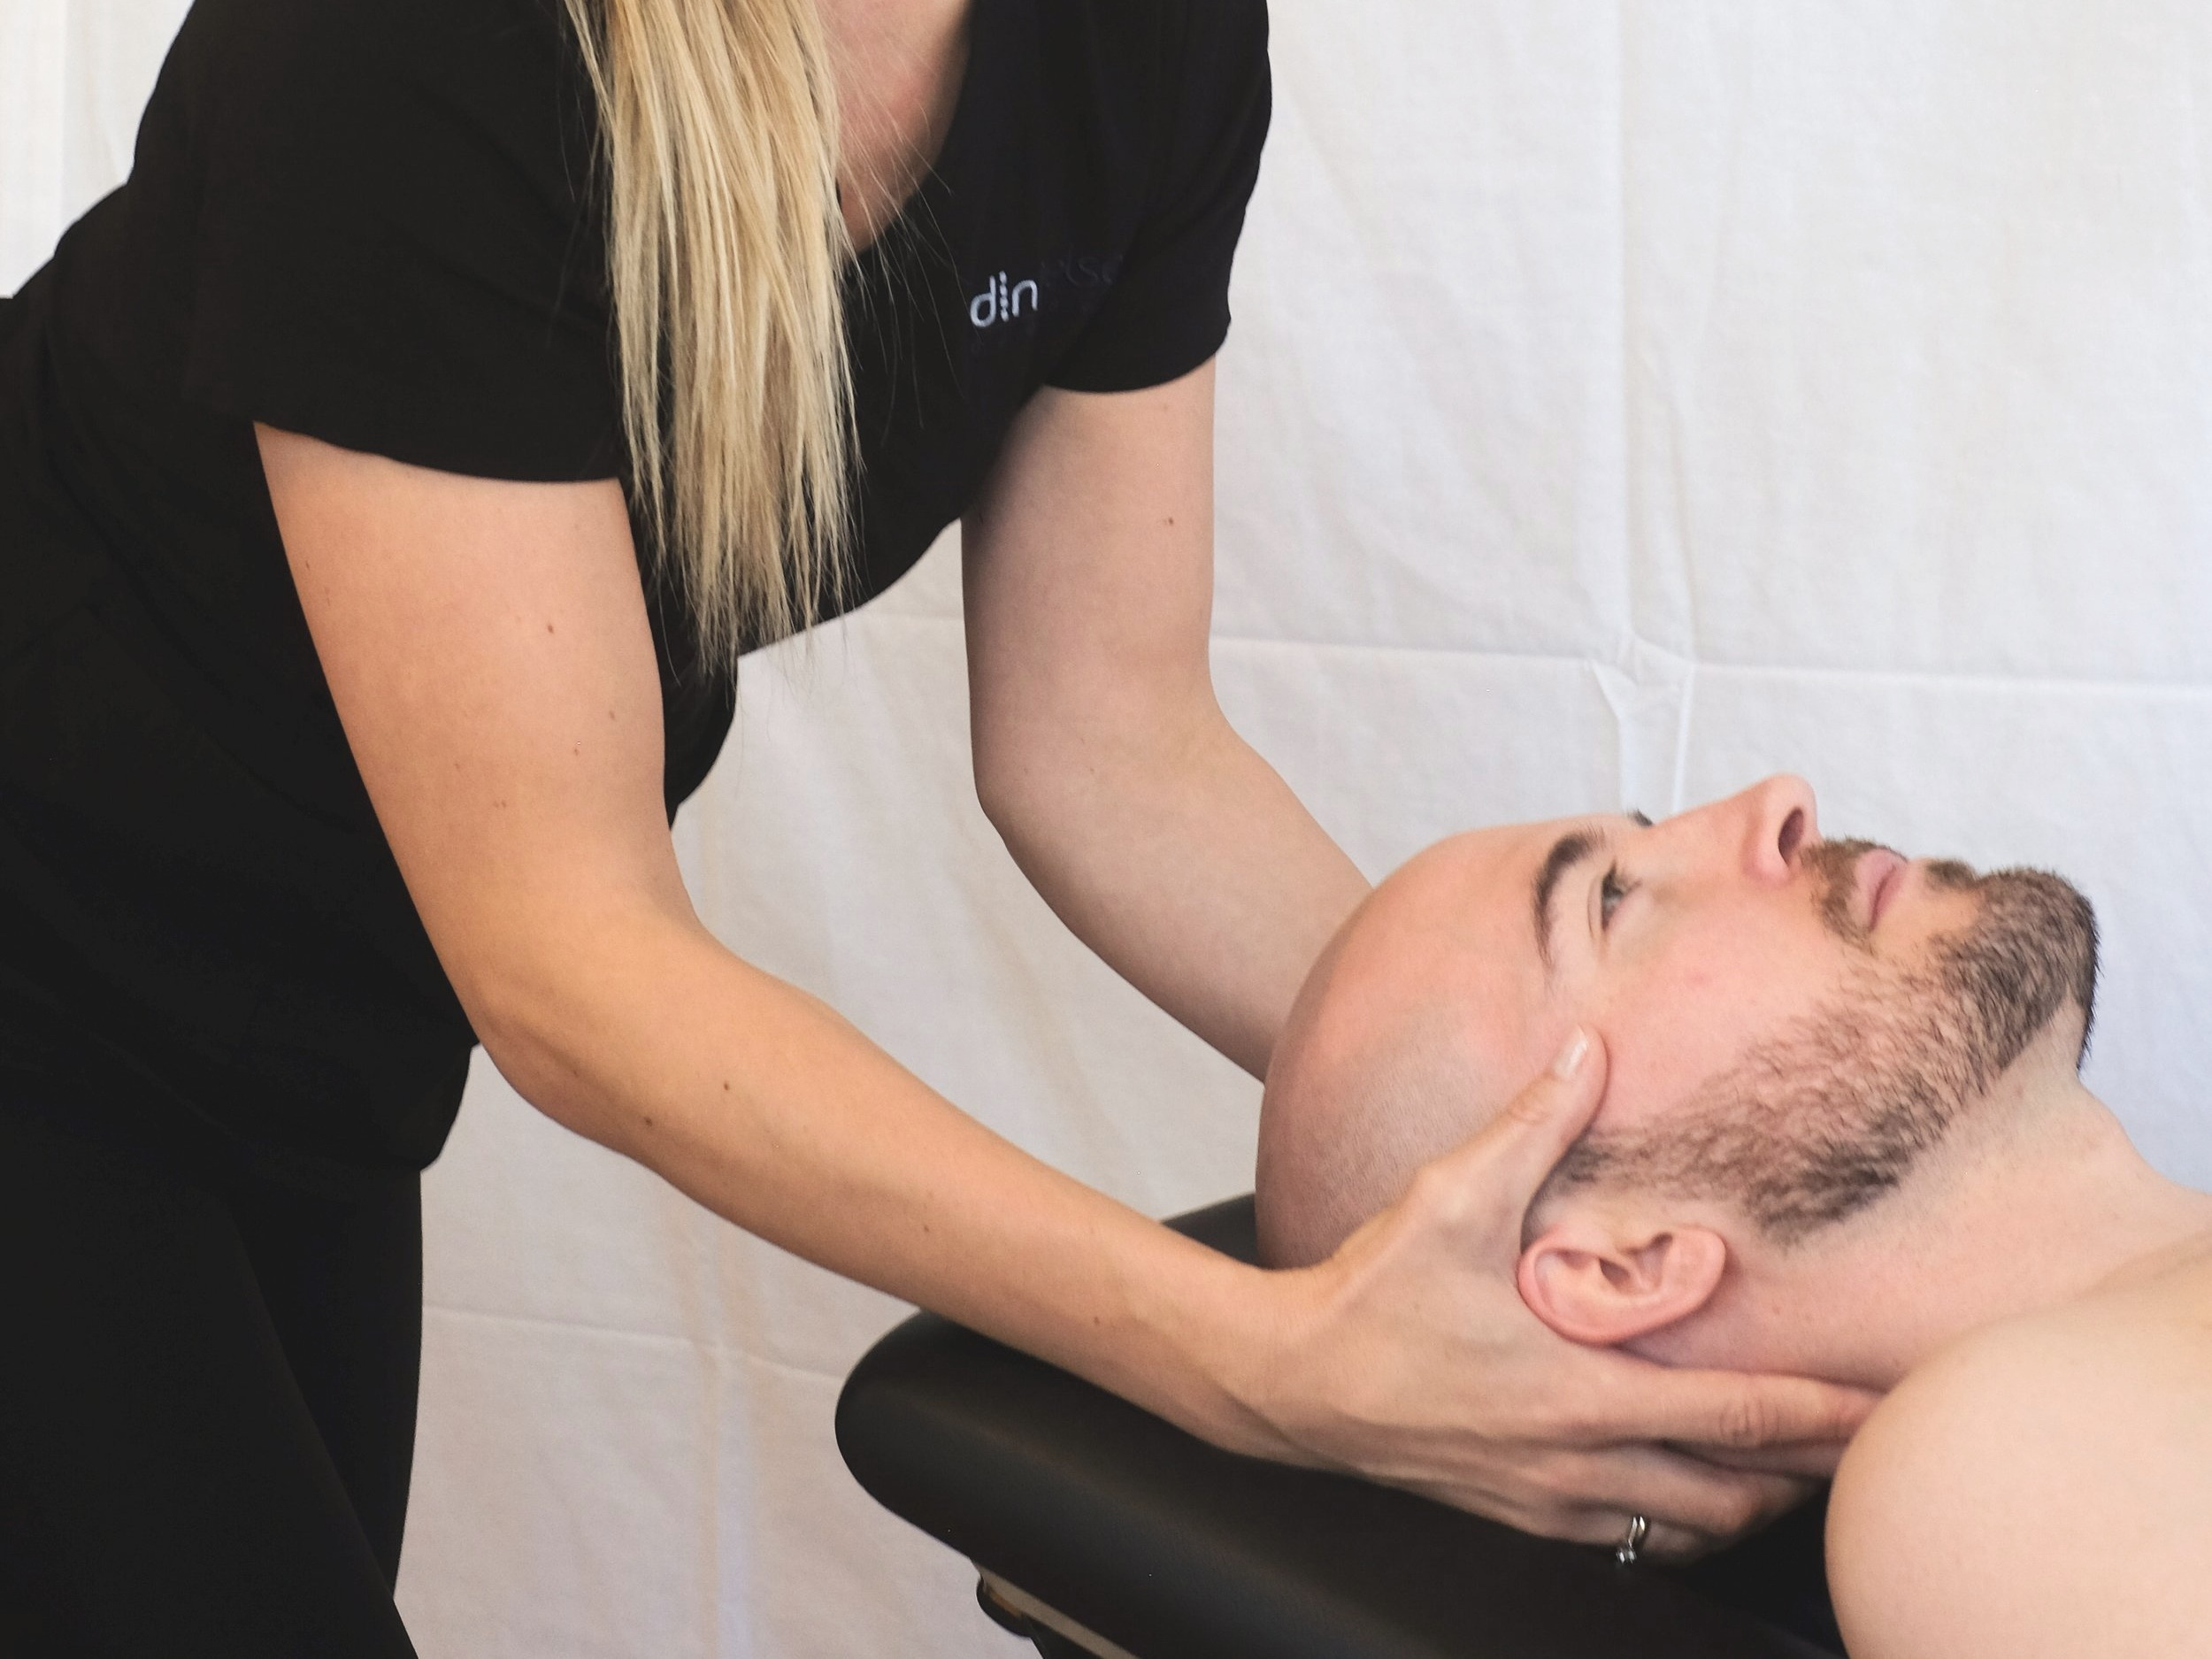 Back, Neck, and Shoulders - Therapeutic Touch to the back, neck, and shoulders is a light to deep massage technique to achieve more range of motion and loosen up tightness and any shooting pain that may occur.45 min $60